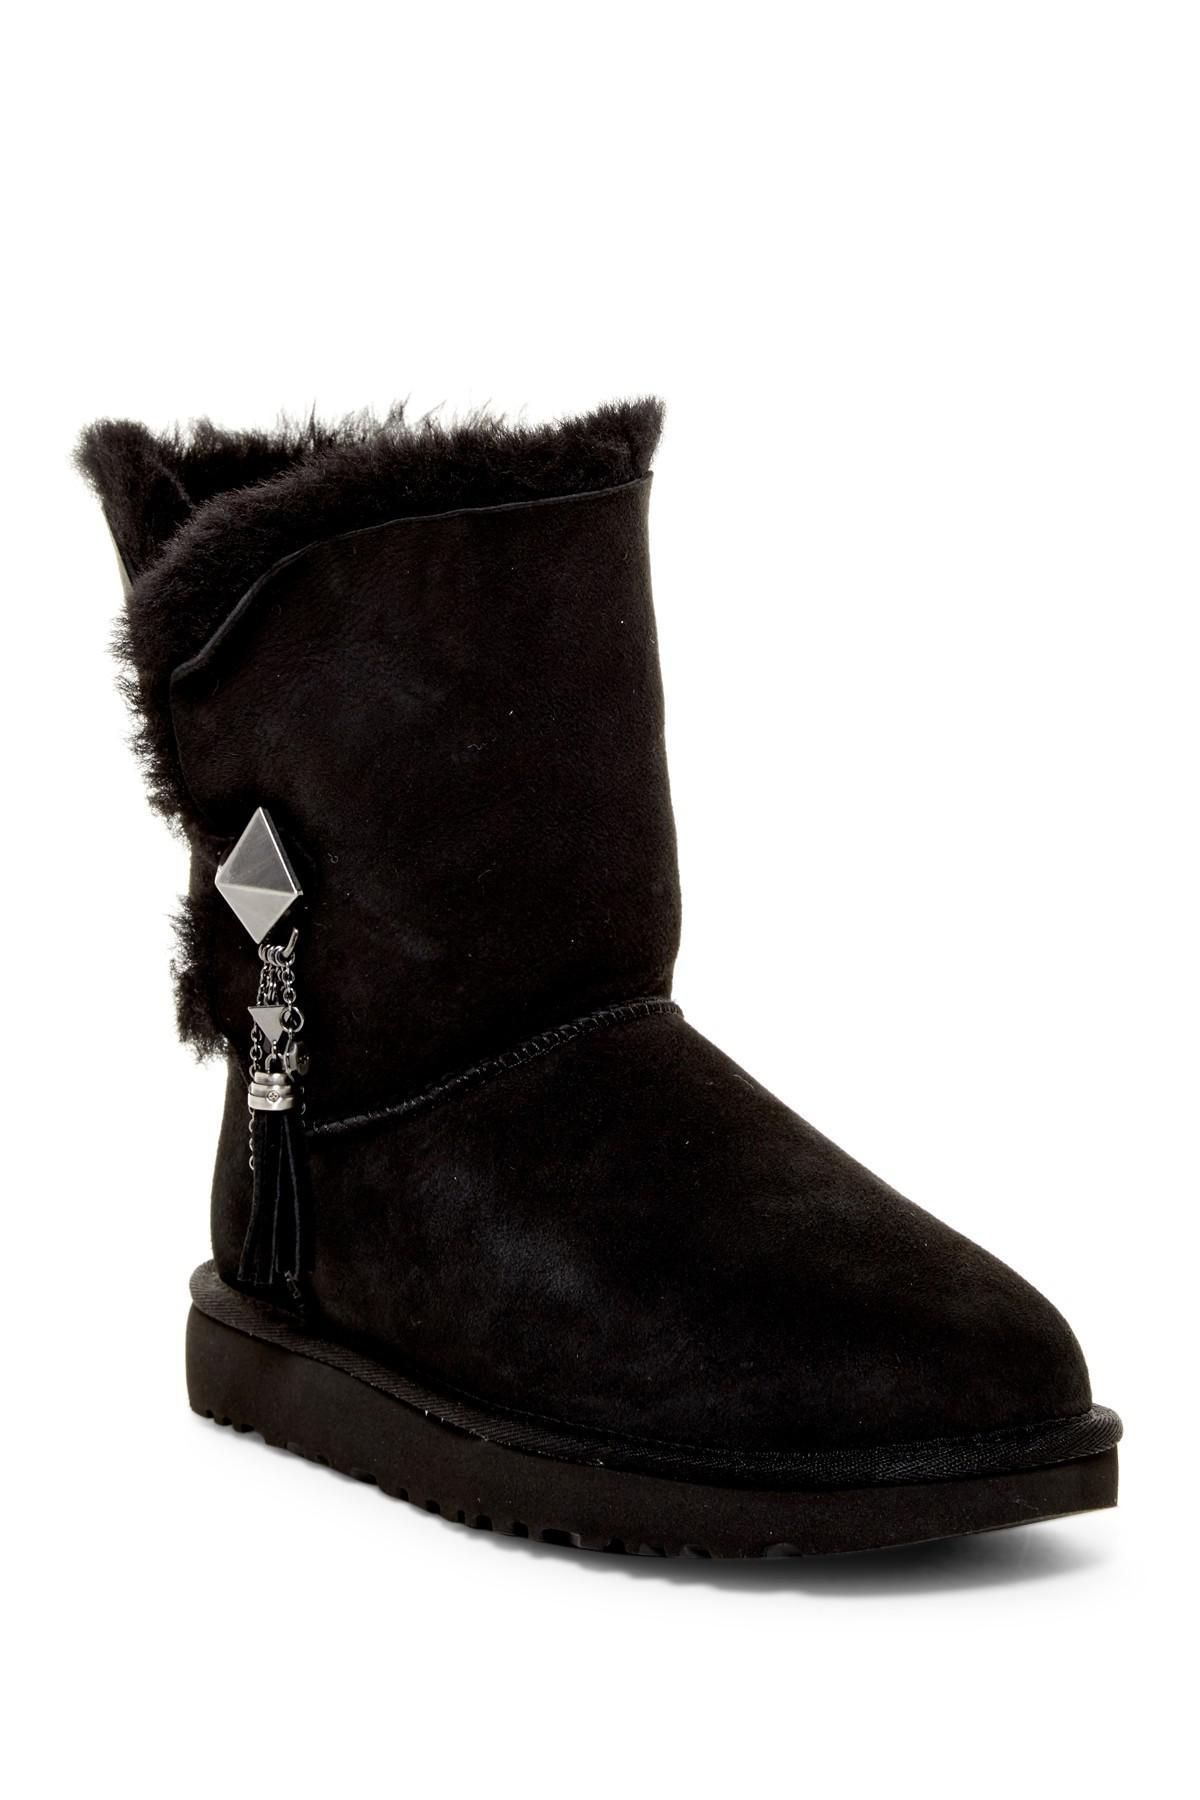 Lyst Ugg Lilou Genuine Shearling Lined Short Boot In Black